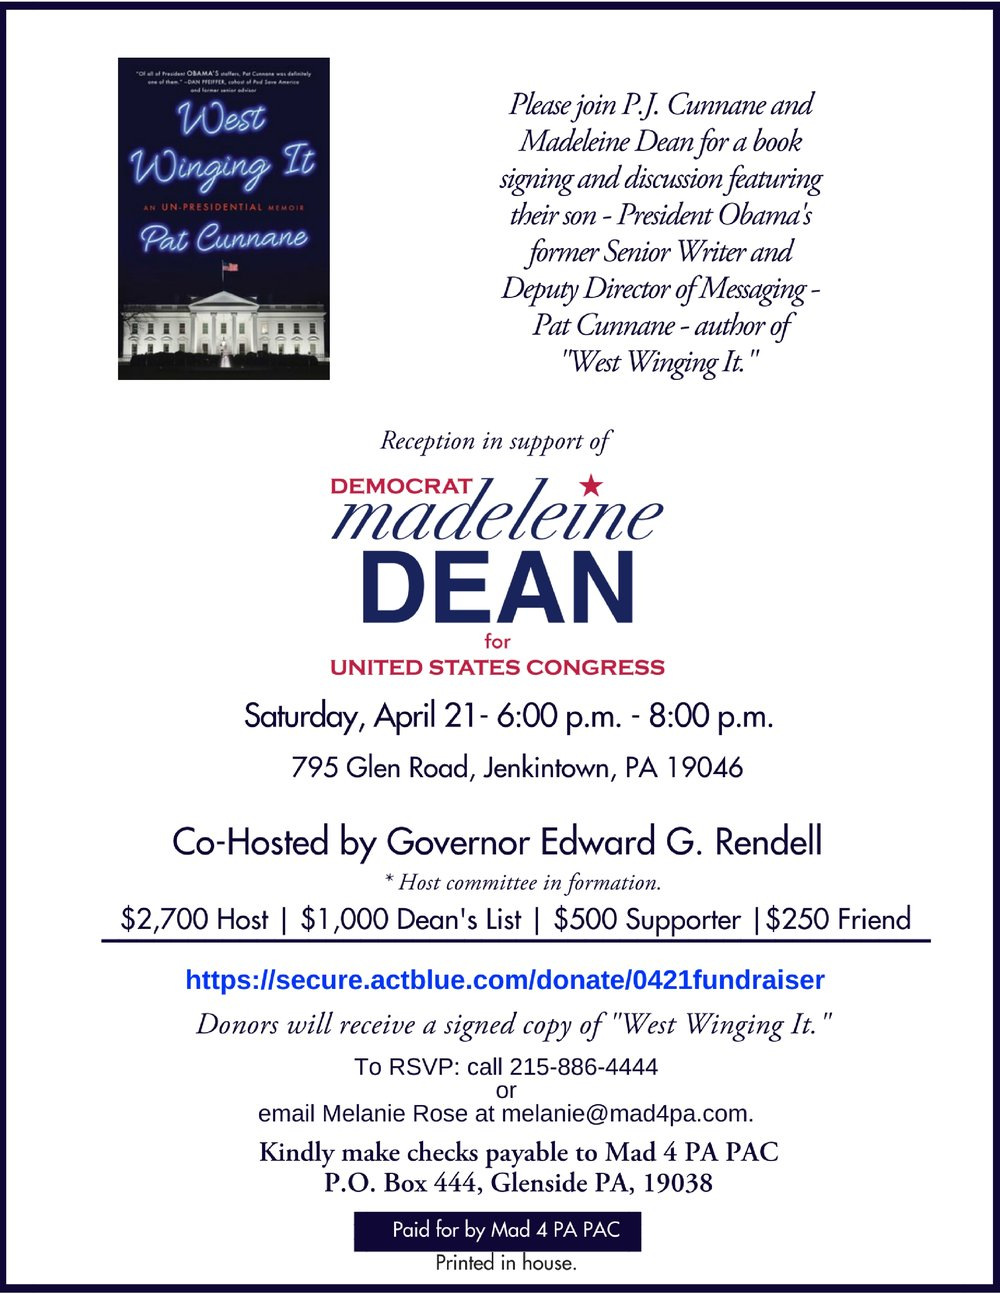 Copy of Copy of Please join P.J. Cunnane and Madeleine Dean for a book signing featuring Pat Cunnane author of _West Wingin' It_ for a reception in support of.jpg